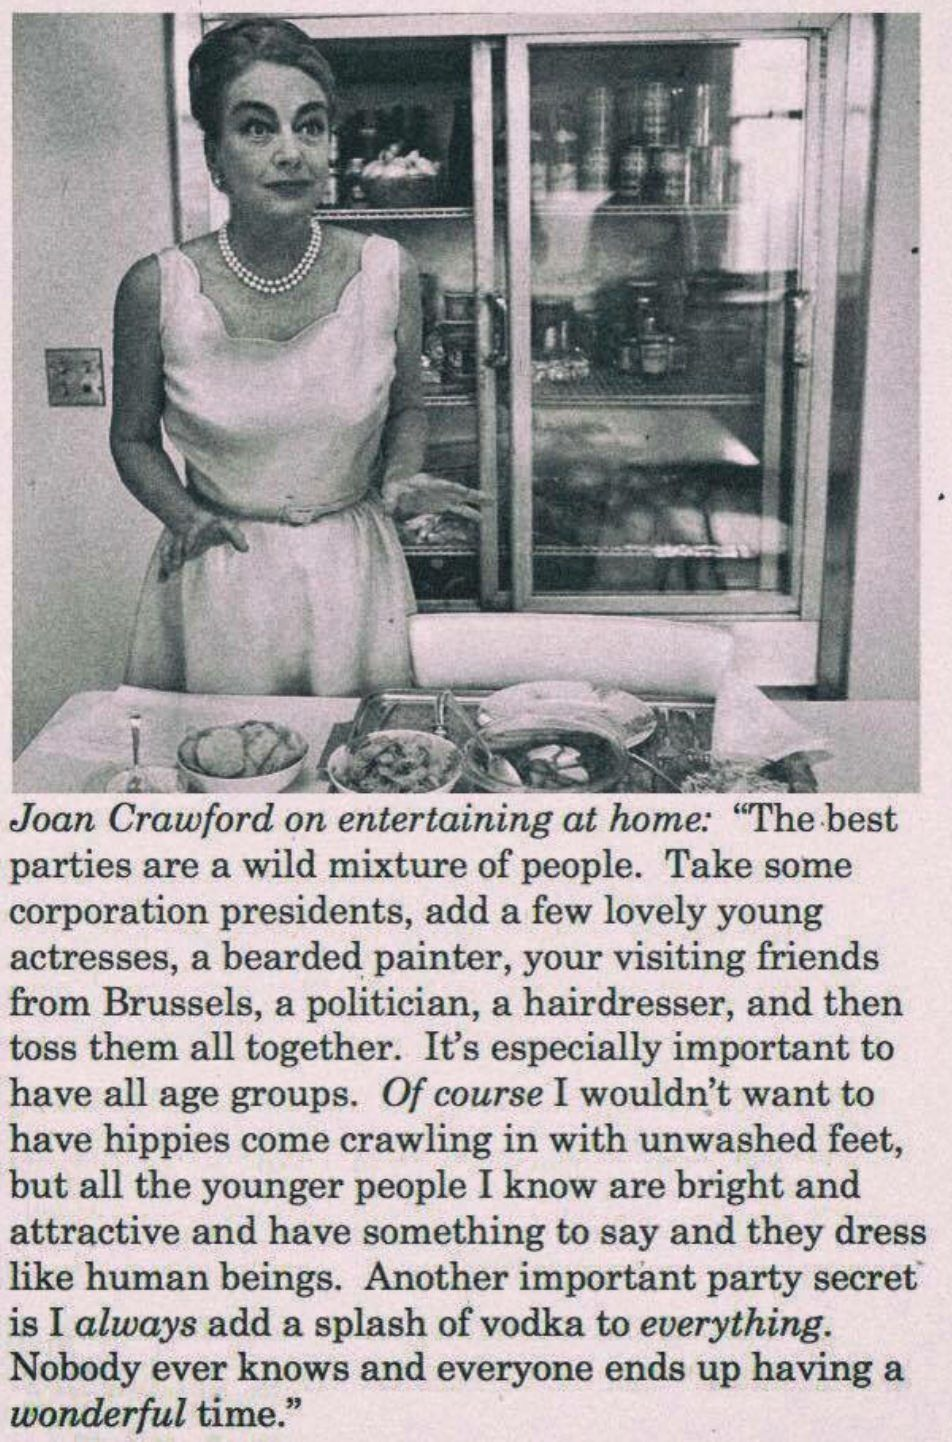 Joan Crawford's rules for throwing a party still hold up today